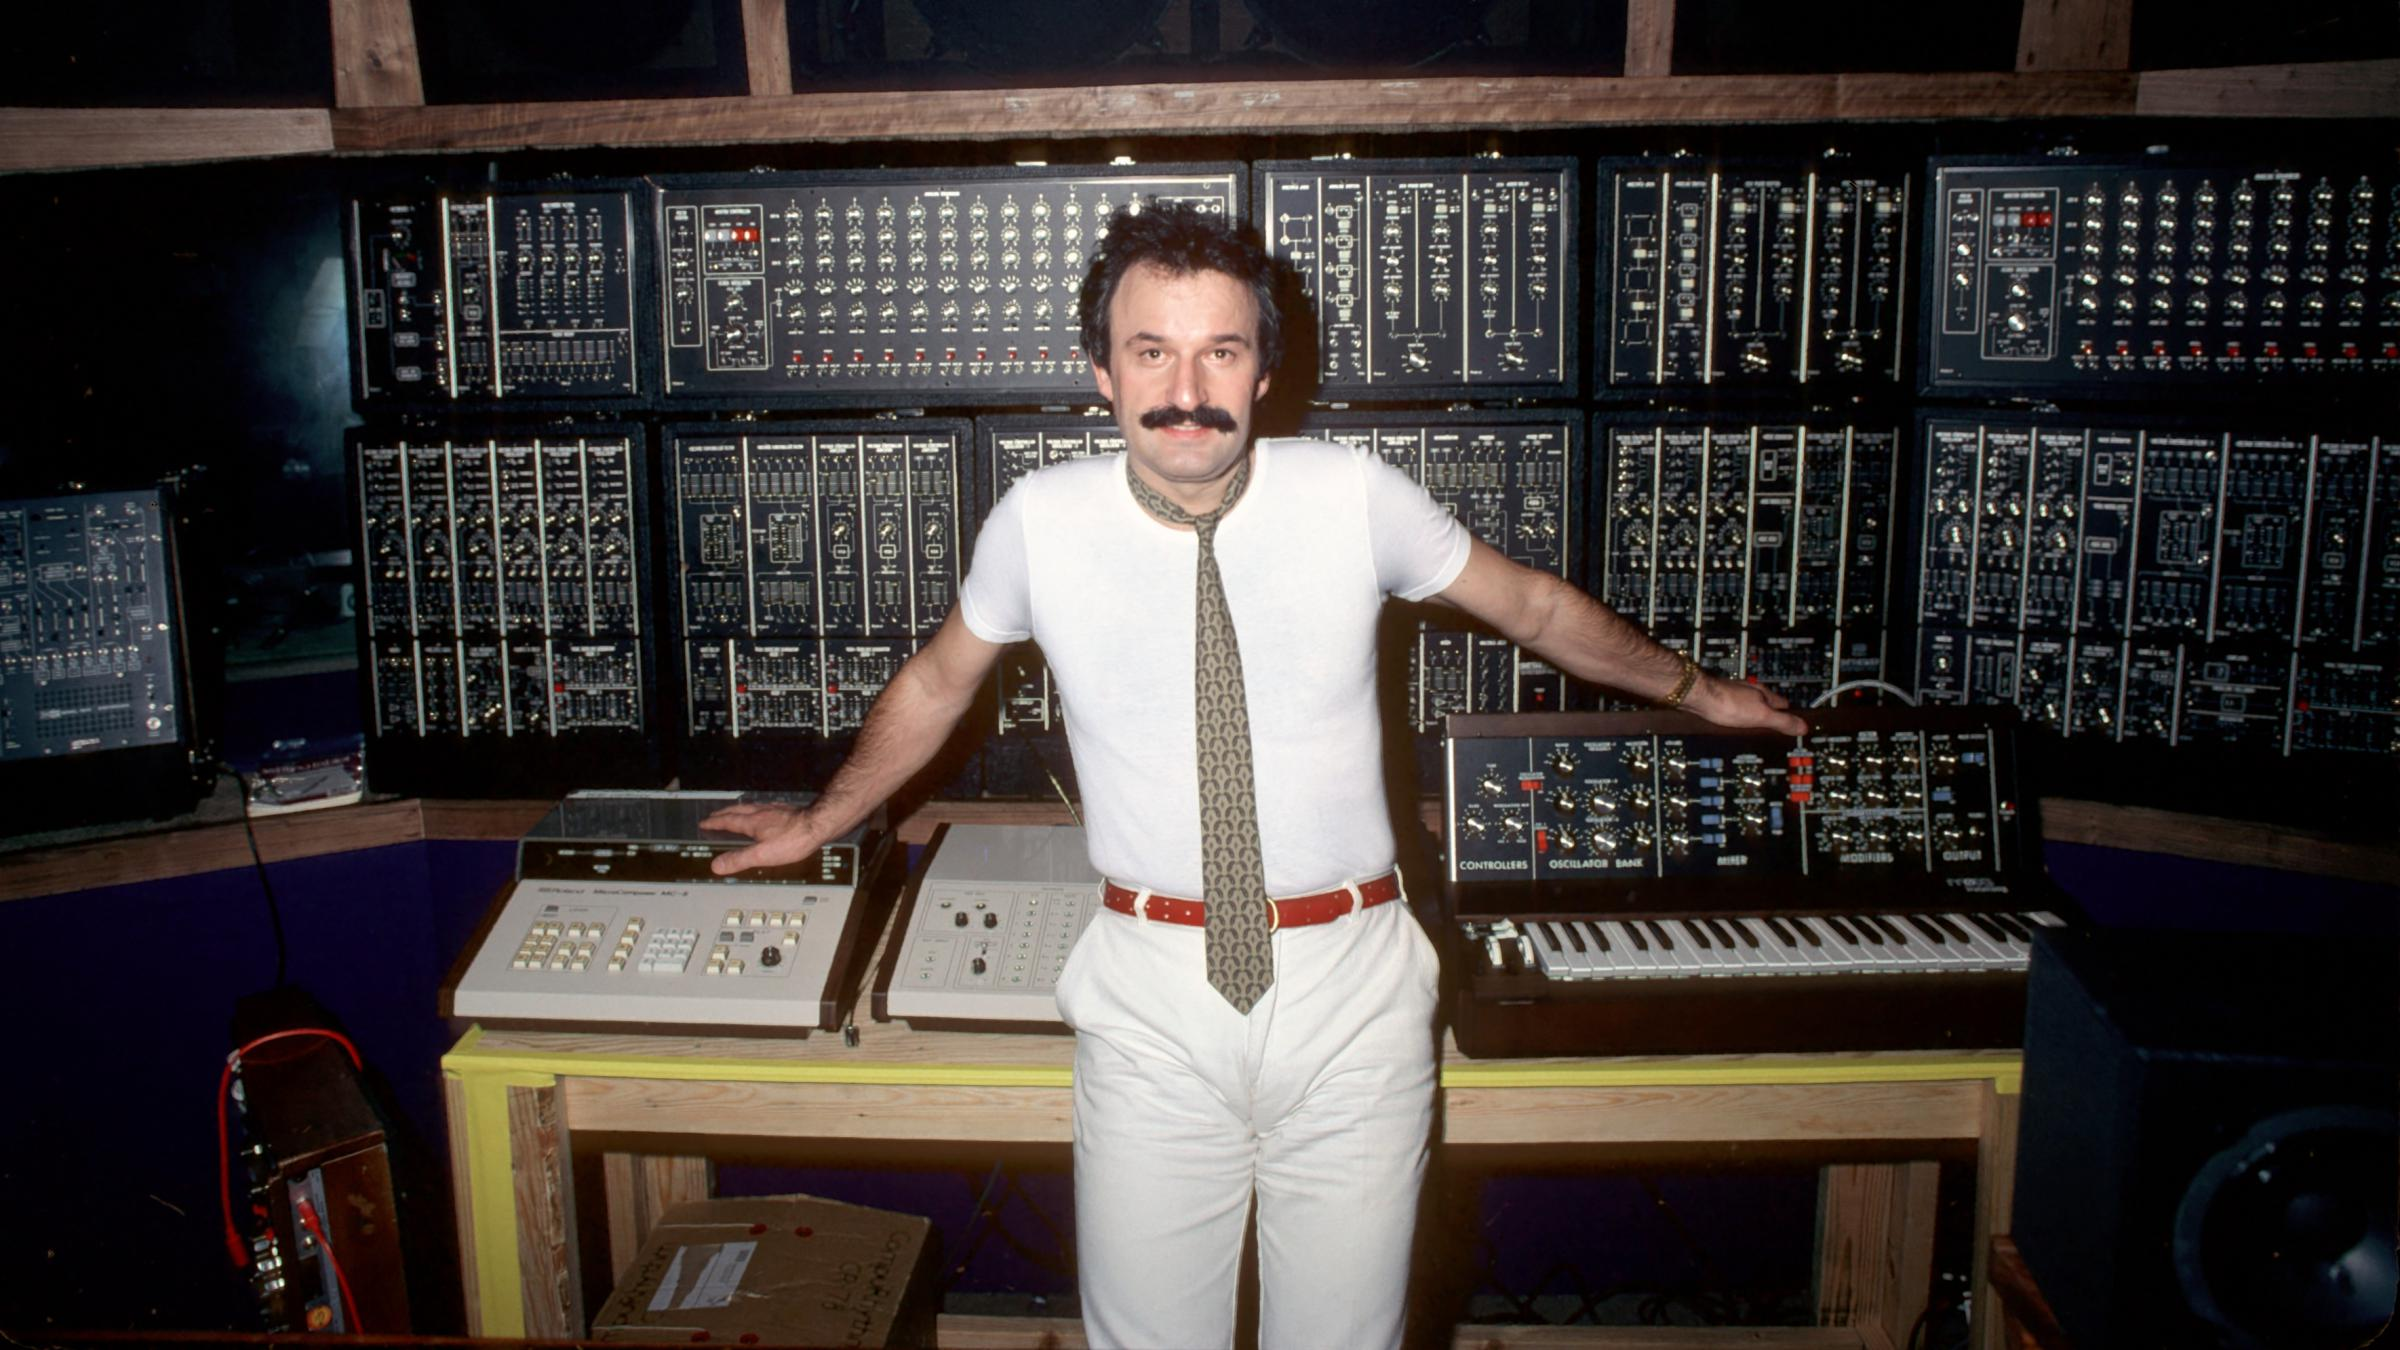 From Here To Eternity: A Giorgio Moroder Primer | KEDM